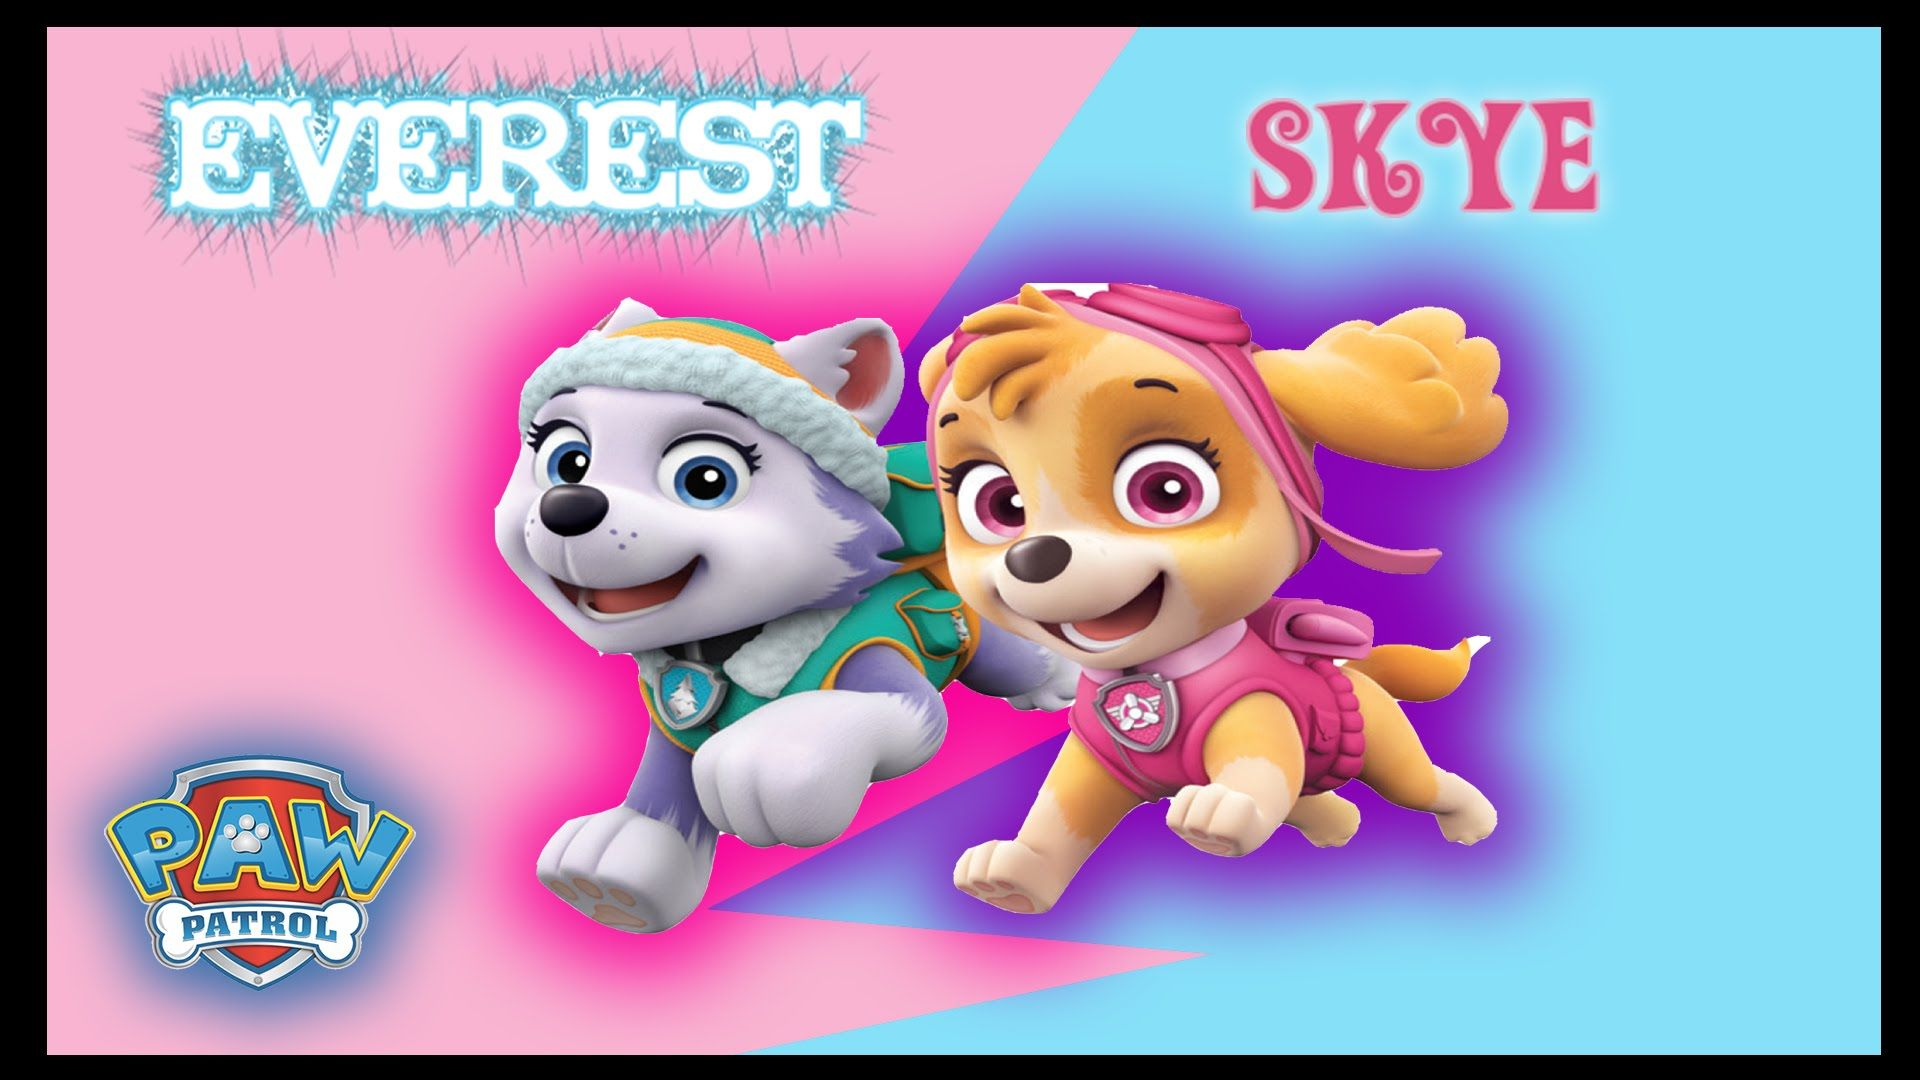 Everest And Skye Paw Patrol Pictures Paw Patrol Skye And Everest 2016 Coloring Page For Kids Coloring